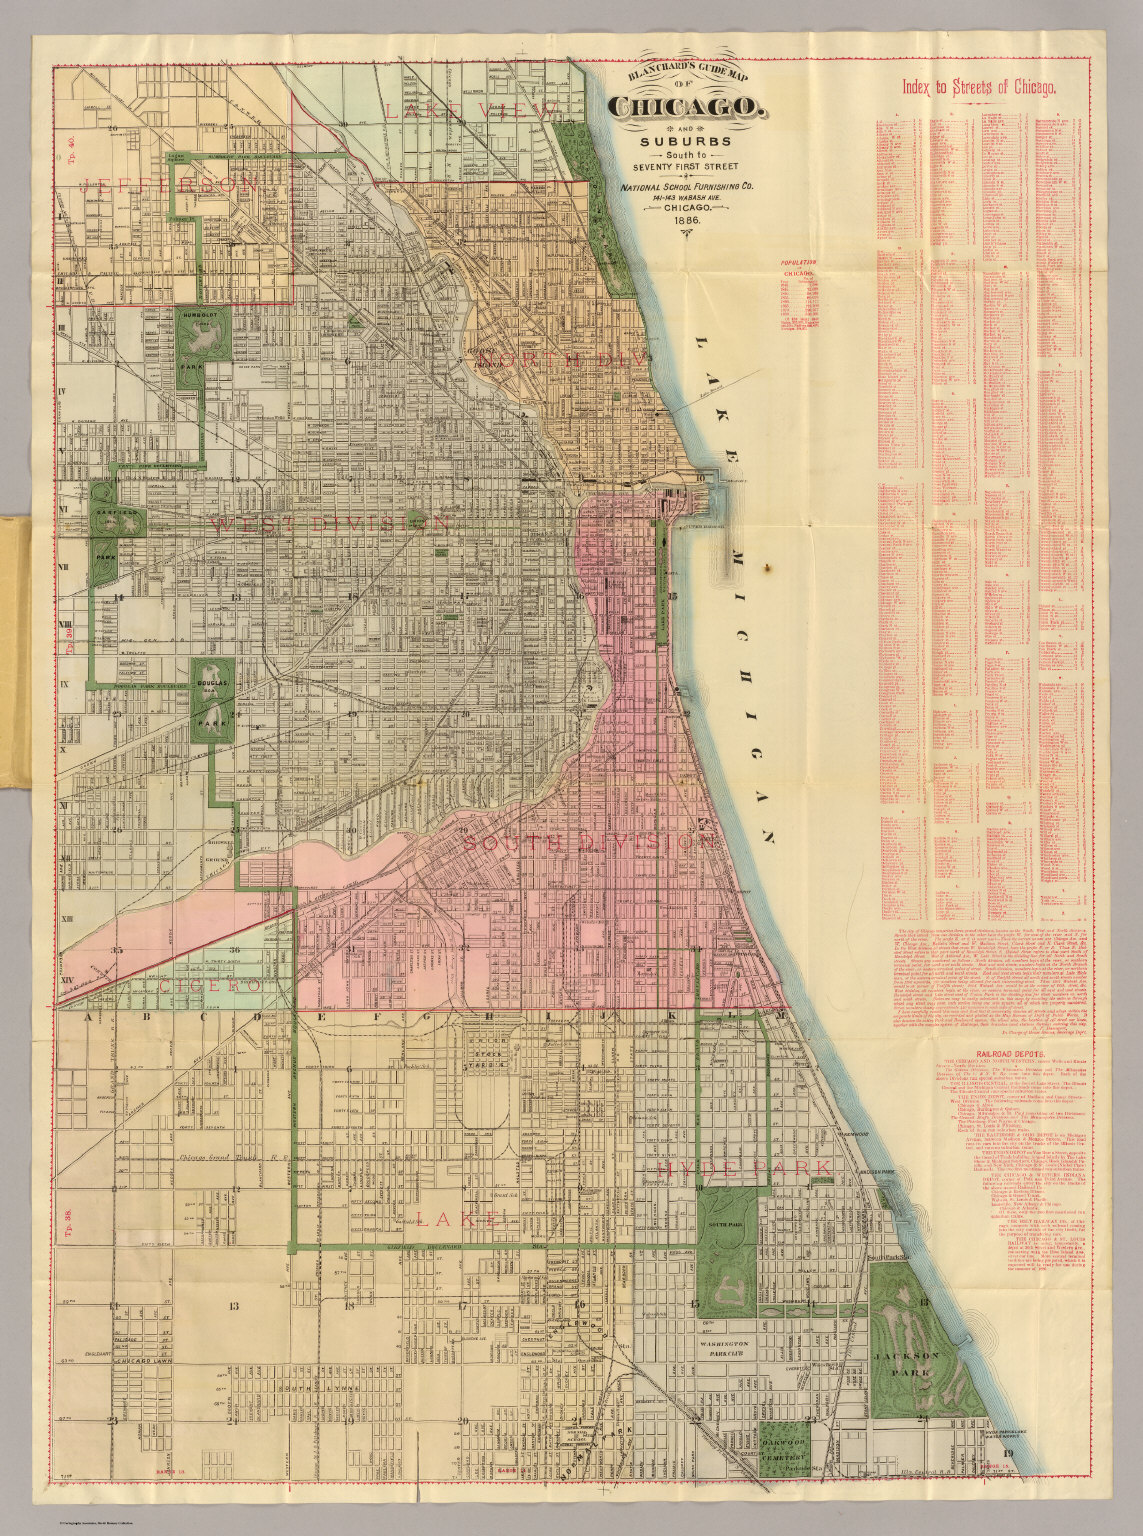 Blanchard s guide map of Chicago    David Rumsey Historical Map     Blanchard s guide map of Chicago